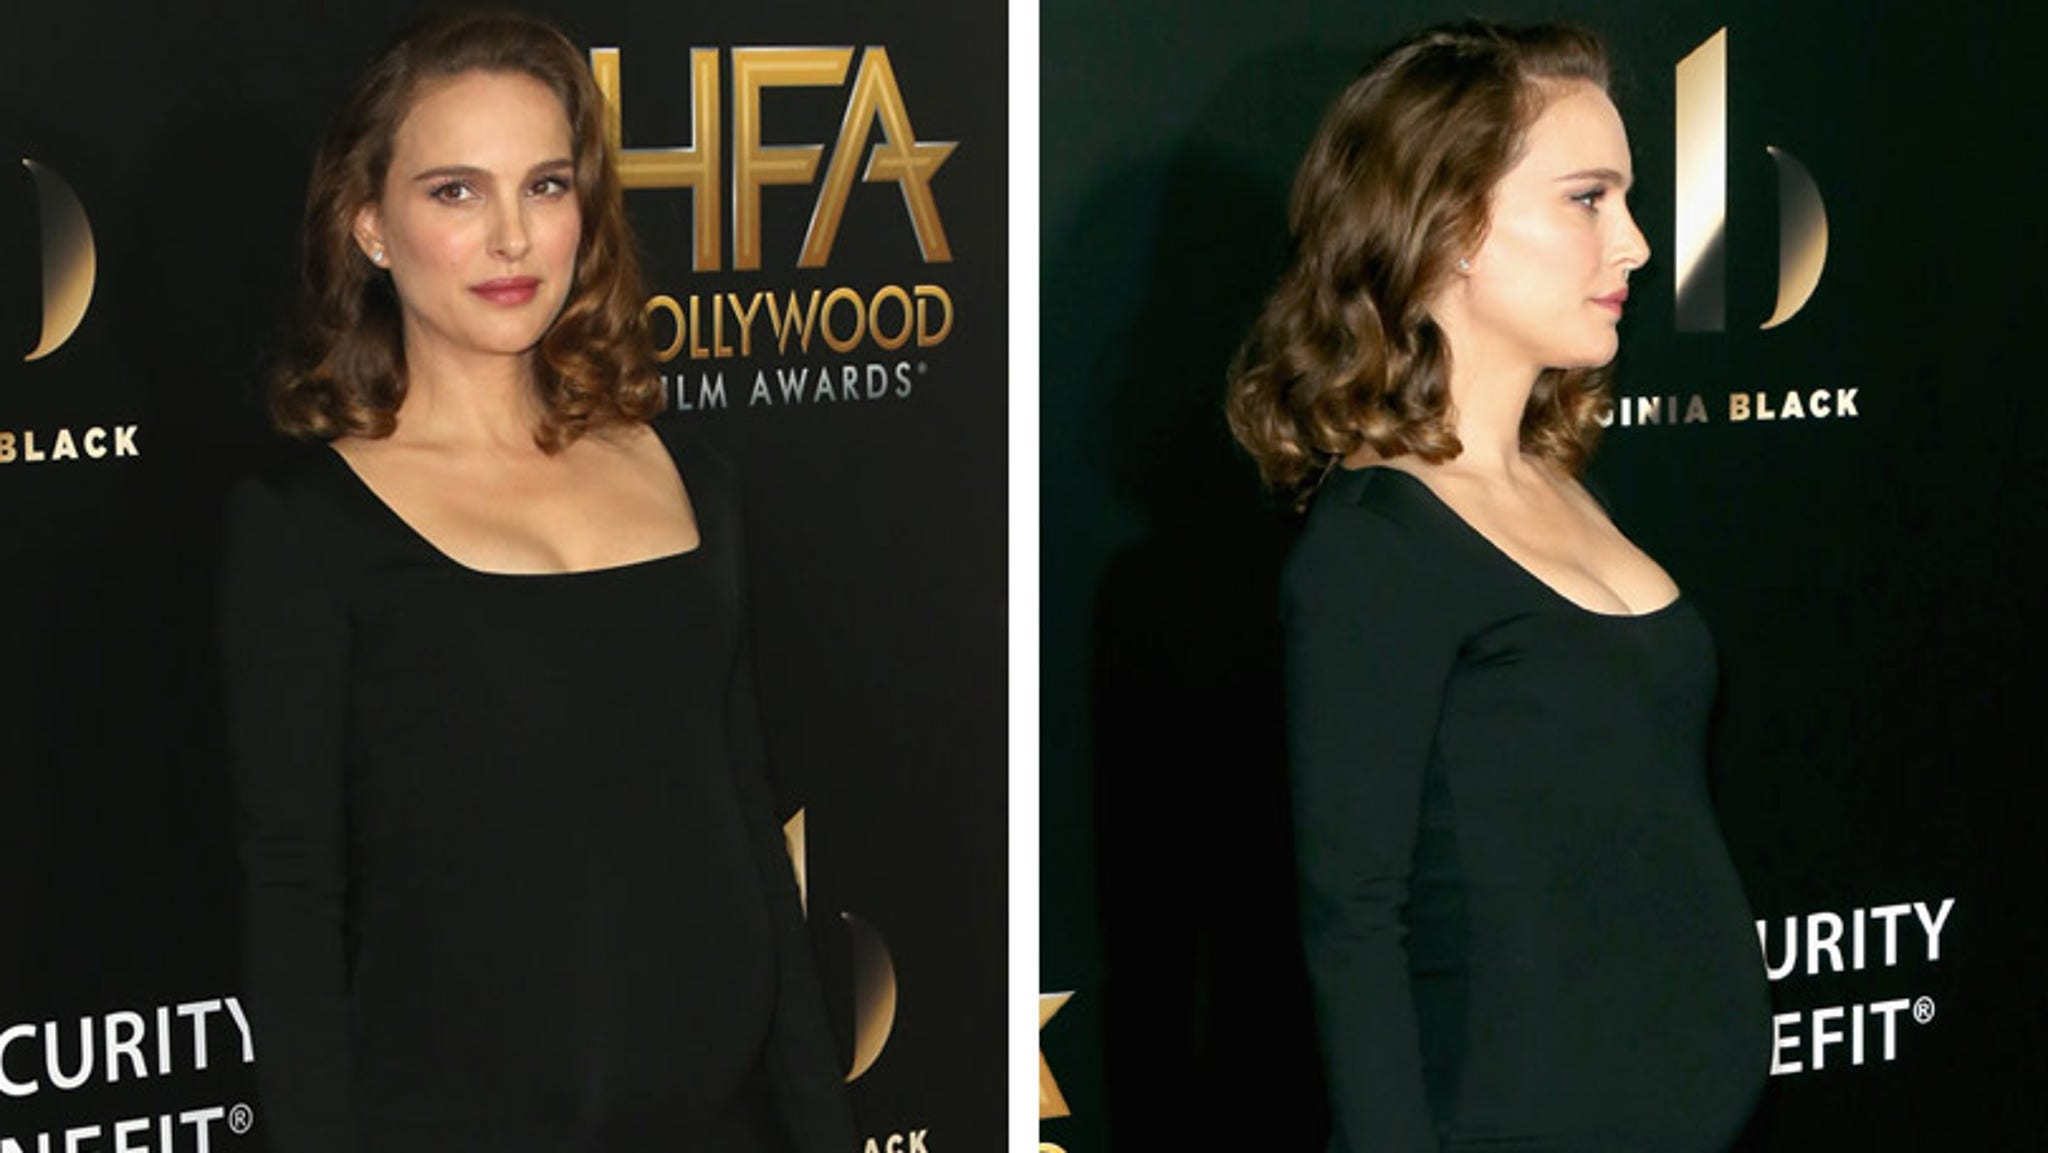 Natalie Portman Flaunts Baby Bump In Chic LBD at Hollywood ...